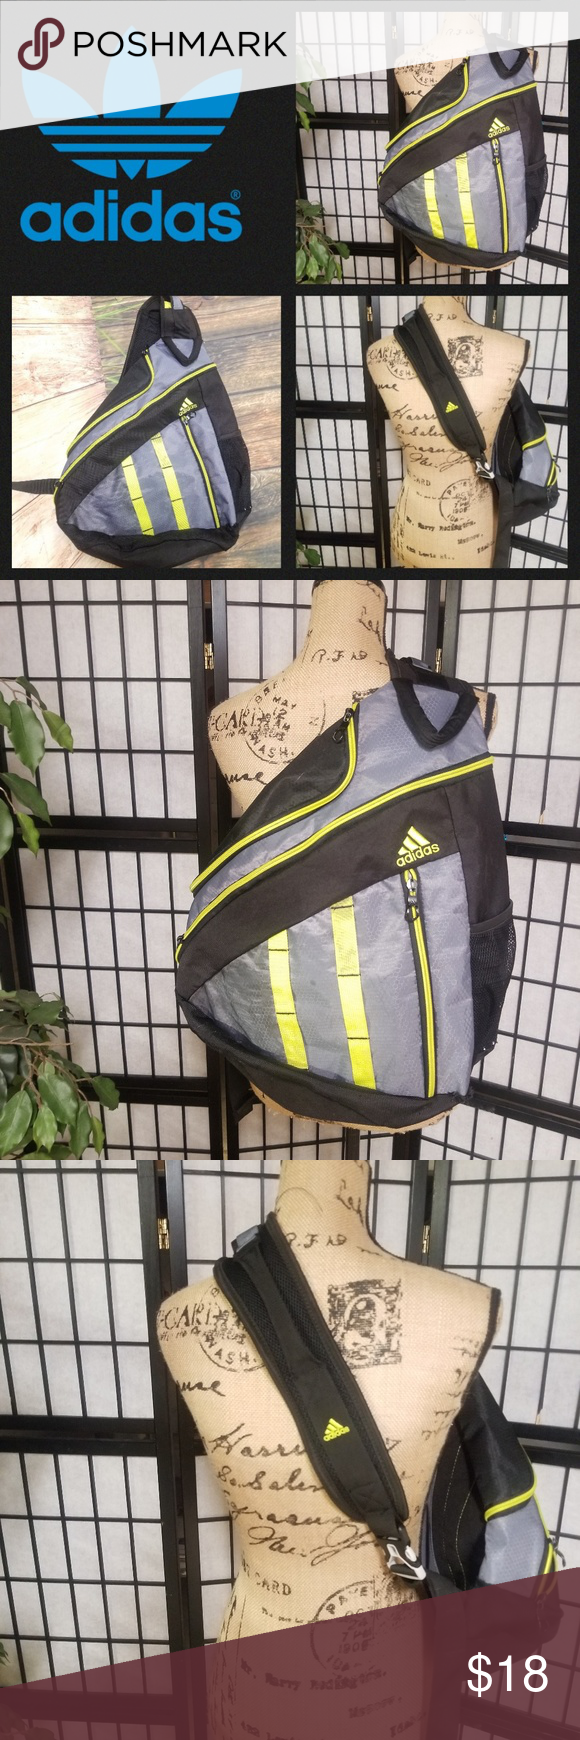 f8cbda5401 📒📓Adidas BackPack grey and green color📓📒 Adidas BackPack black grey and lime  green color. Pre carried in good condition. It does have some stains on the  ...